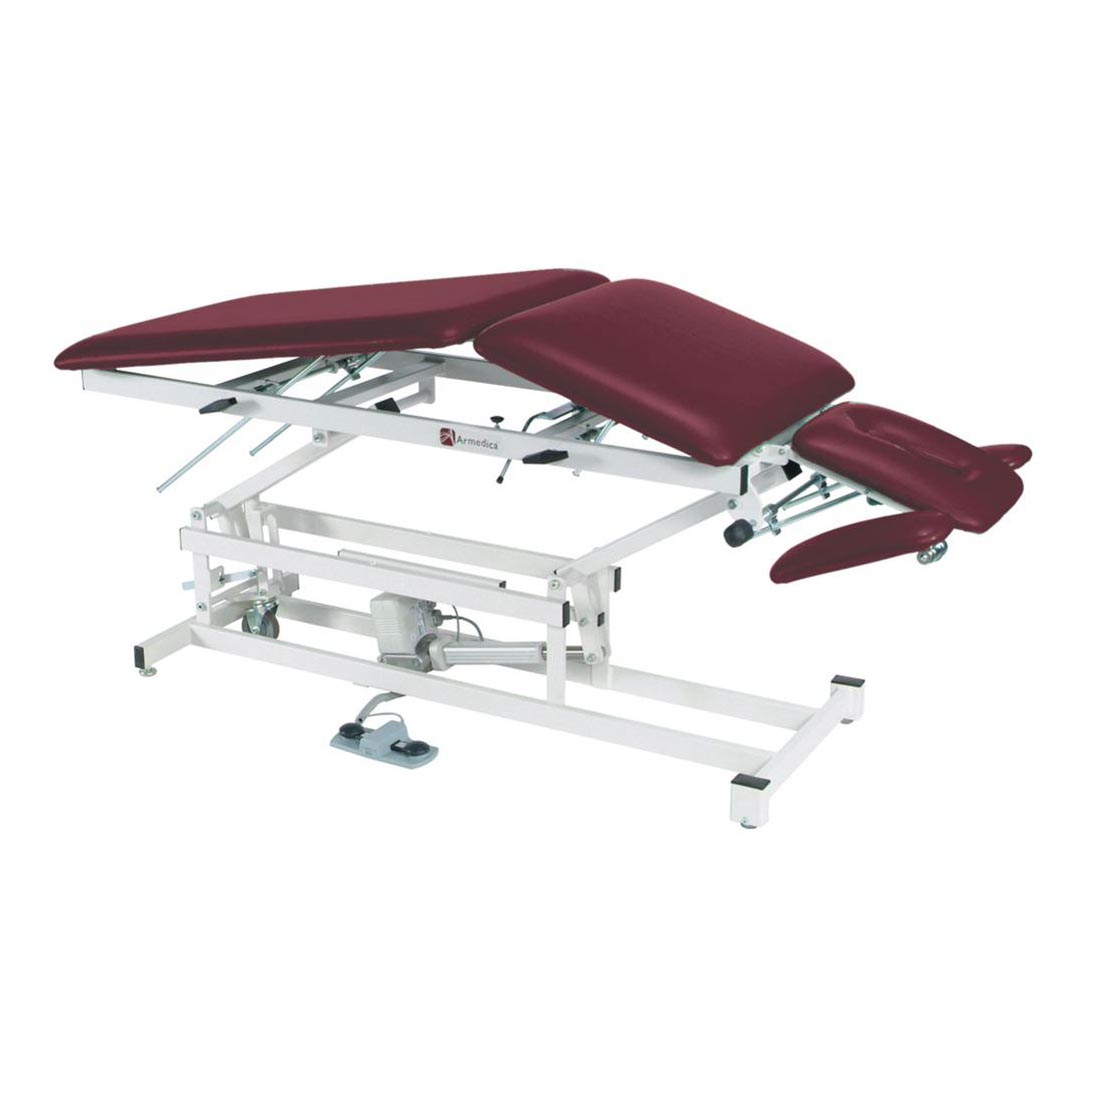 Armedica AM-500 treatment table